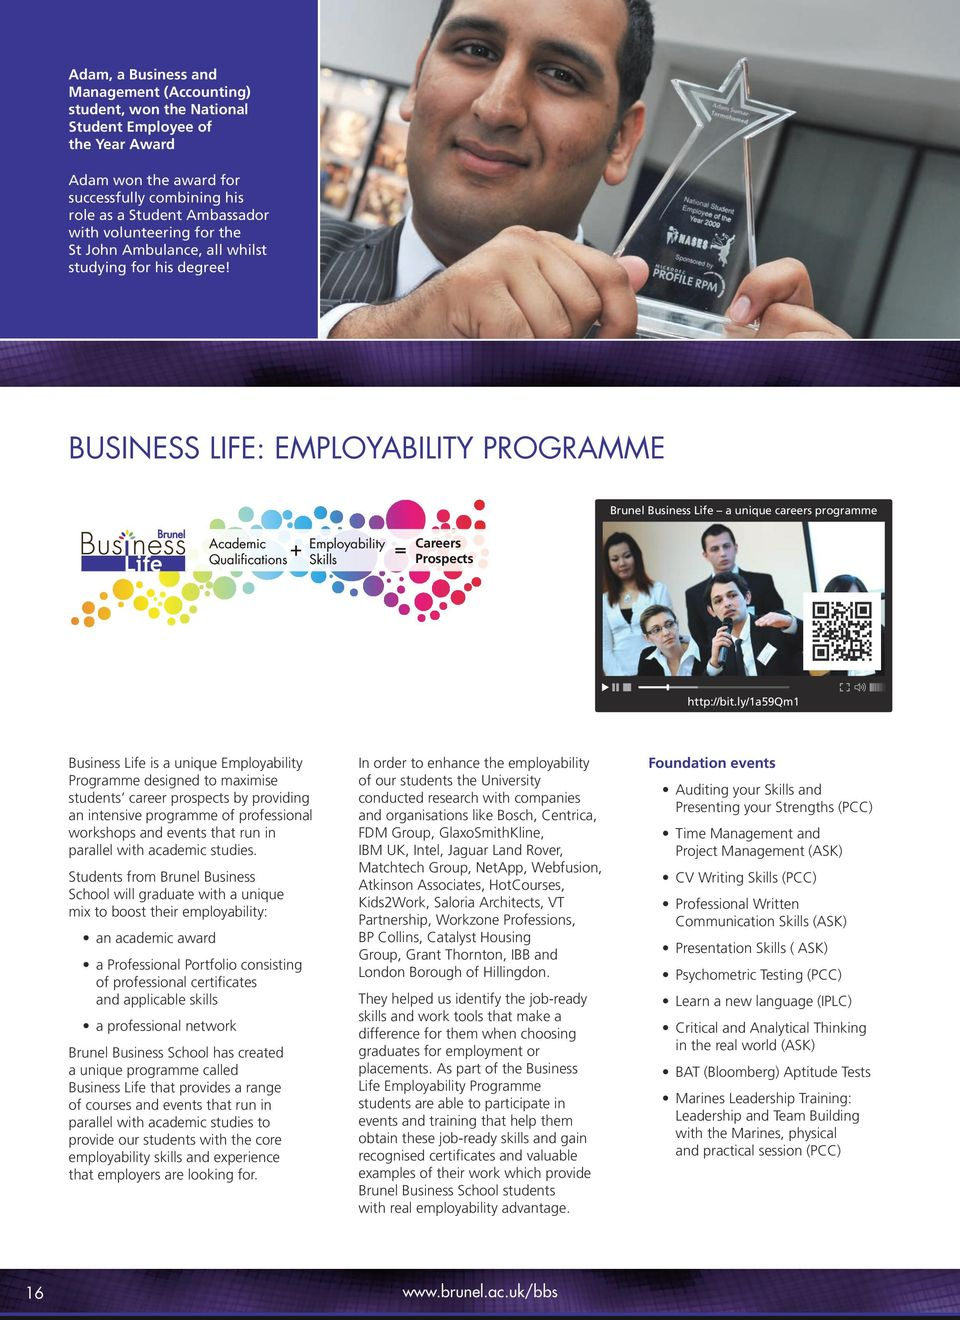 BUSINESS LIFE: EMPLOYABILITY PROGRAMME Academic Qualifications + = Employability Skills Careers Prospects Brunel Business Life a unique careers programme http://bit.